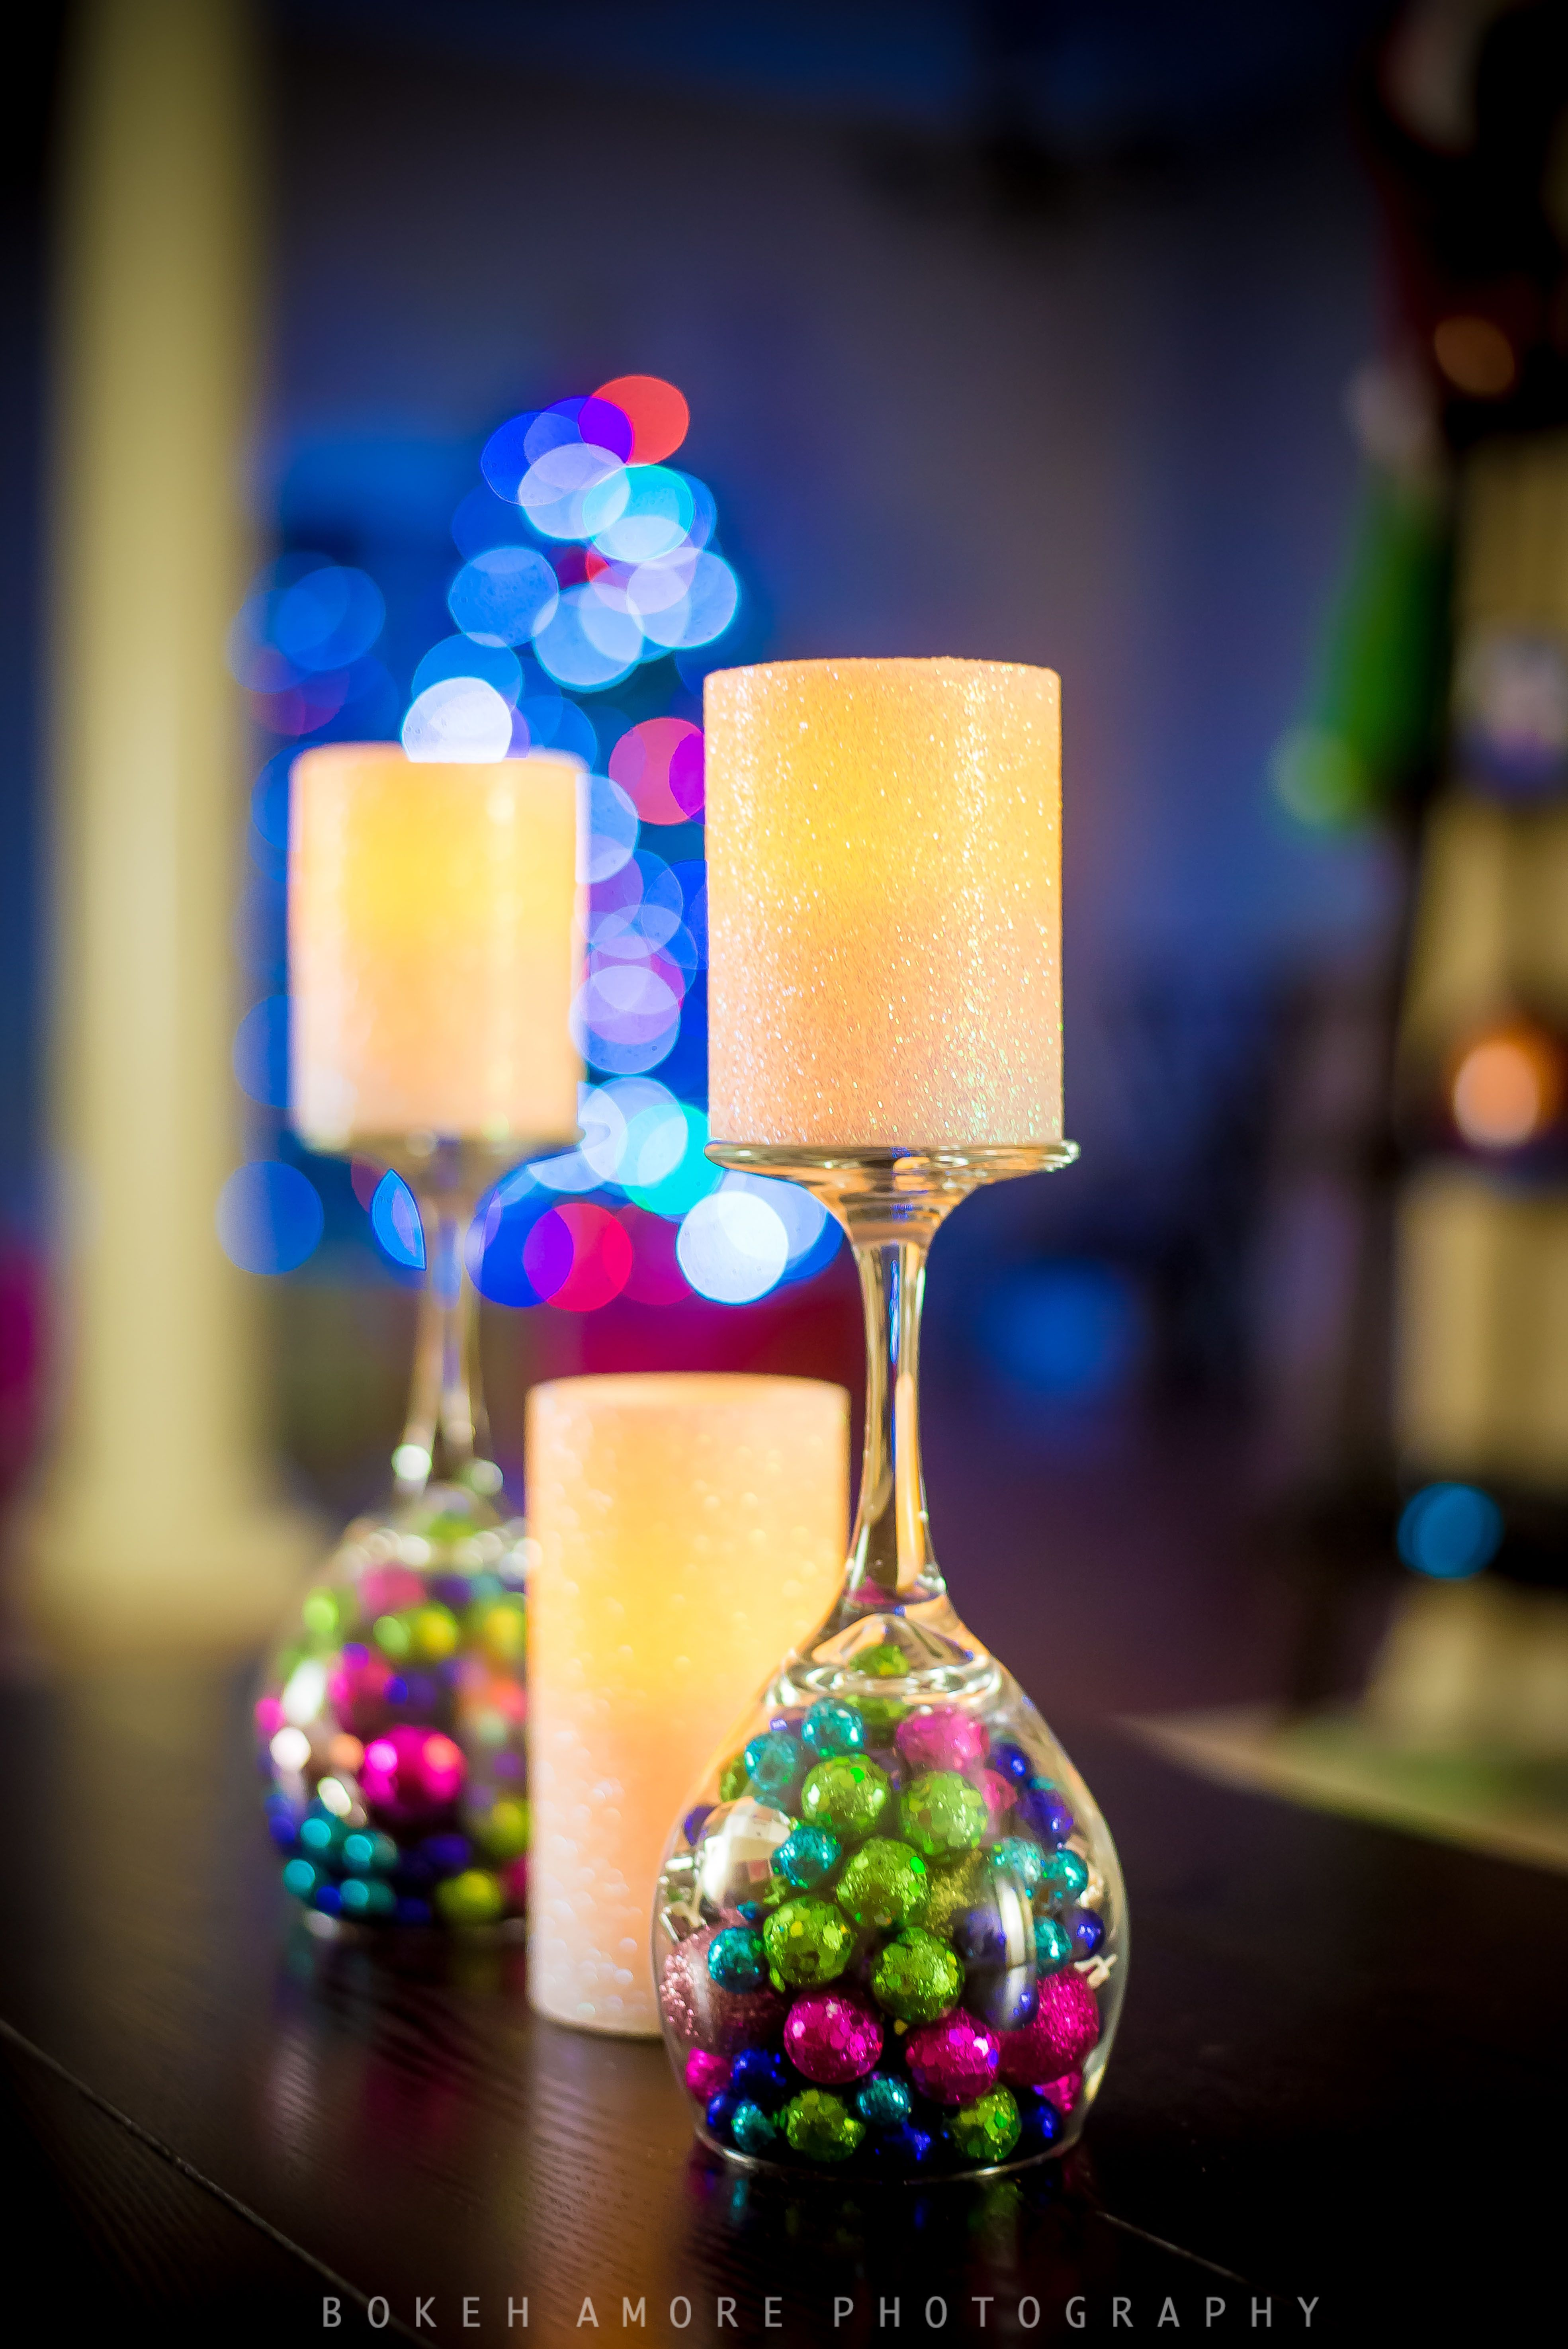 Hobby lobby glass ornaments - Diy Christmas Decorations Wine Glasses We Had At Home Little Ornaments From Hobby Lobby